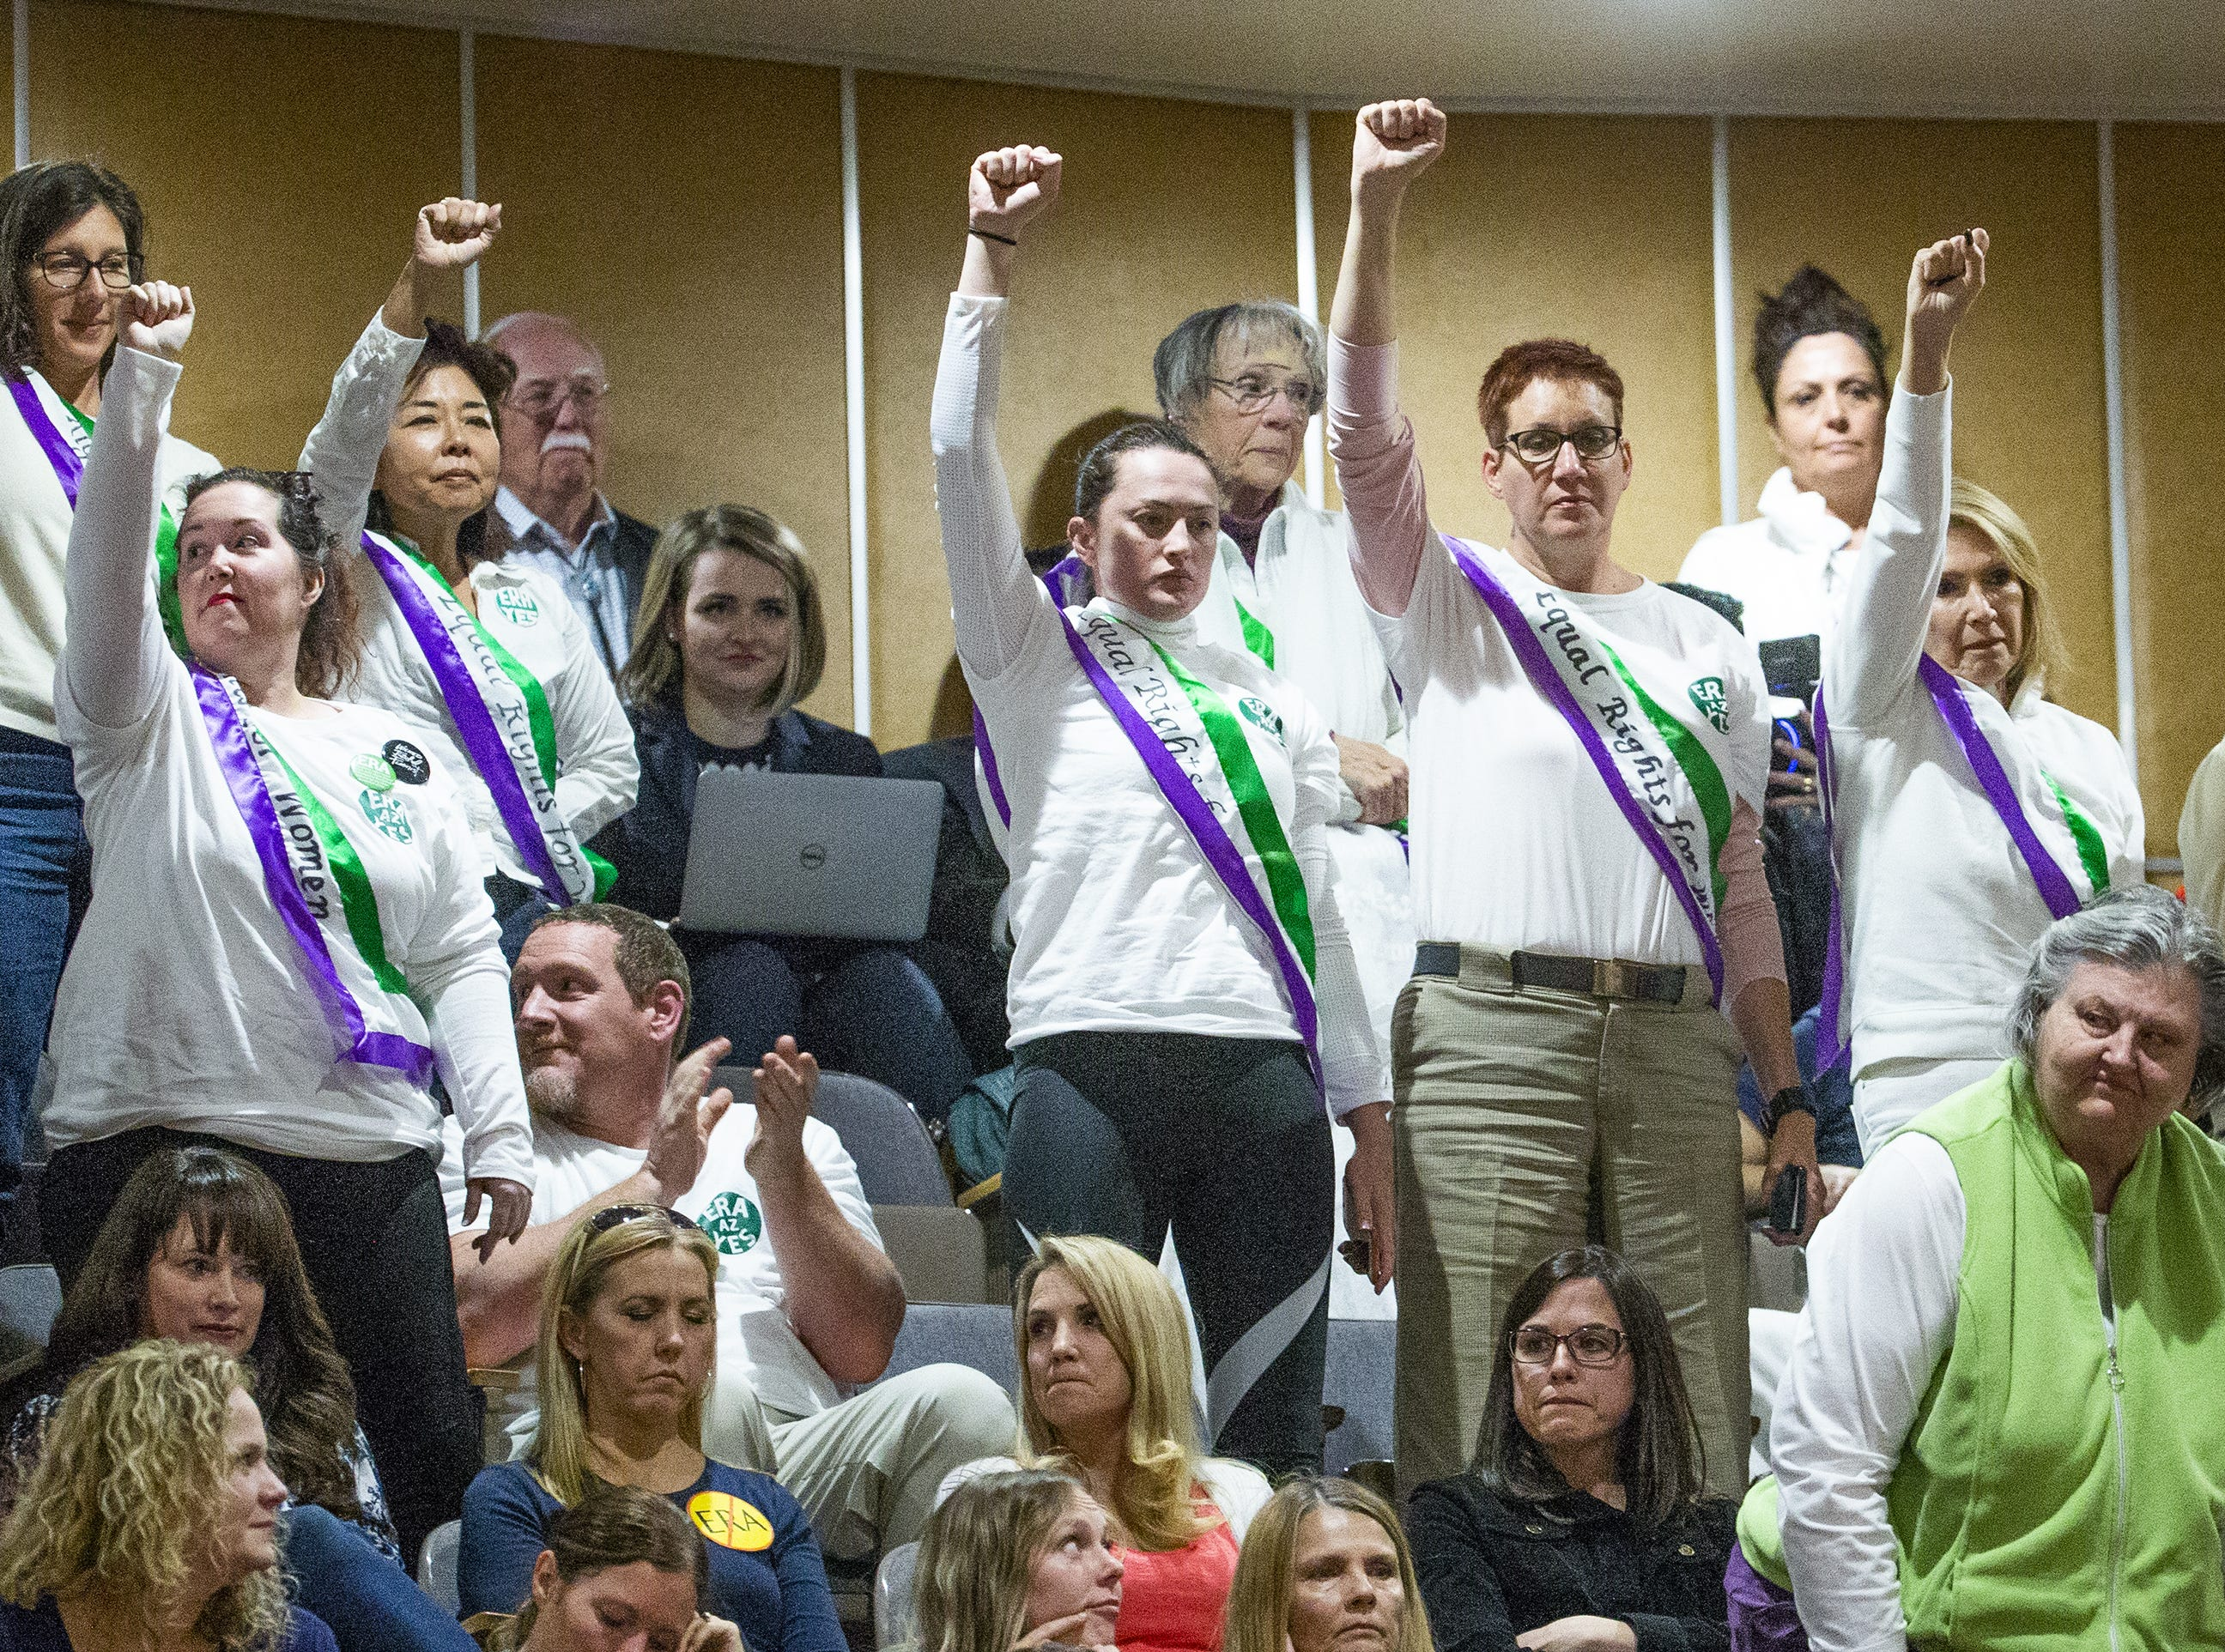 Supporters of the ERA signal their support from the gallery of the Arizona Senate during debate at the Capitol in Phoenix, March 13, 2019.